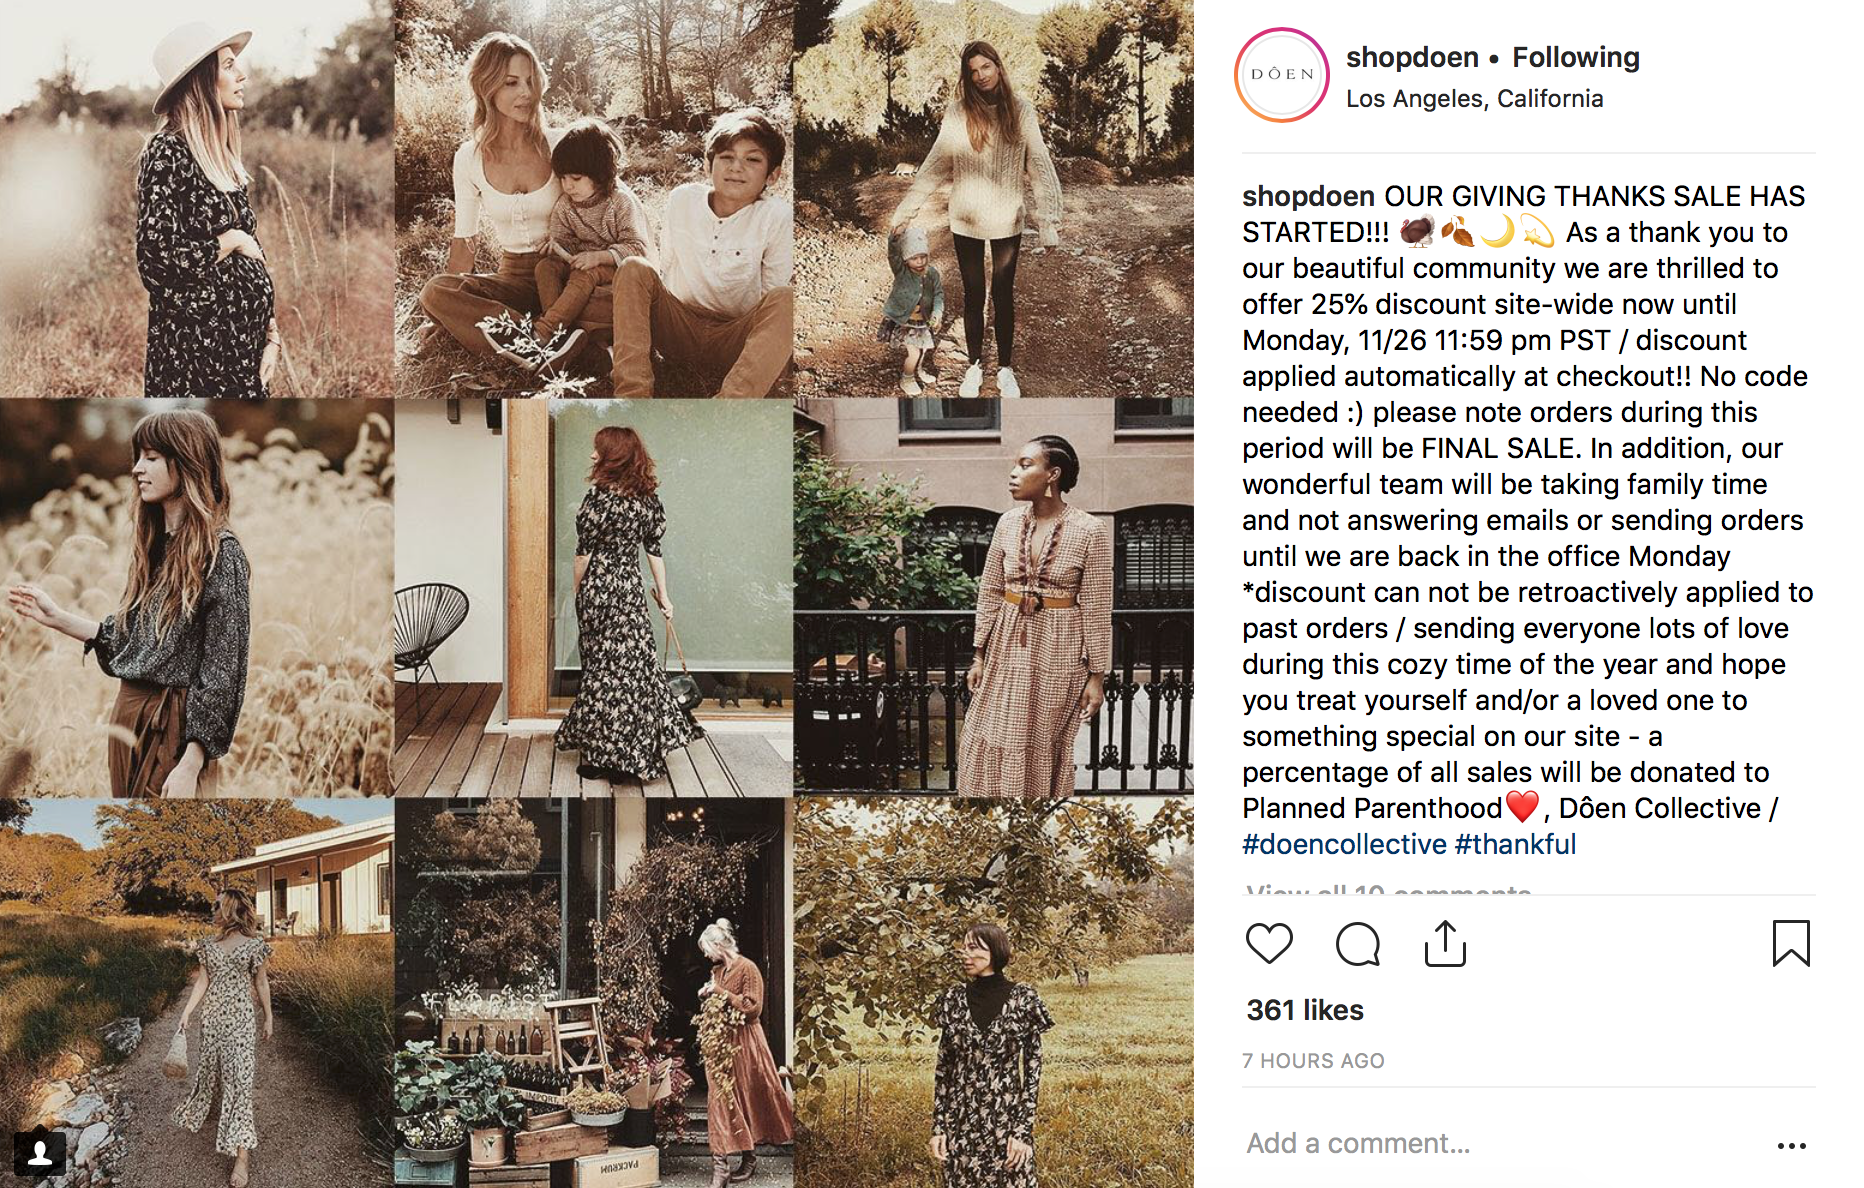 Doen Instagram post on Thanksgiving Day 2018. Note the mention of customer service limitations over the weekend, final sale policy, and charitable aspect to the sale.